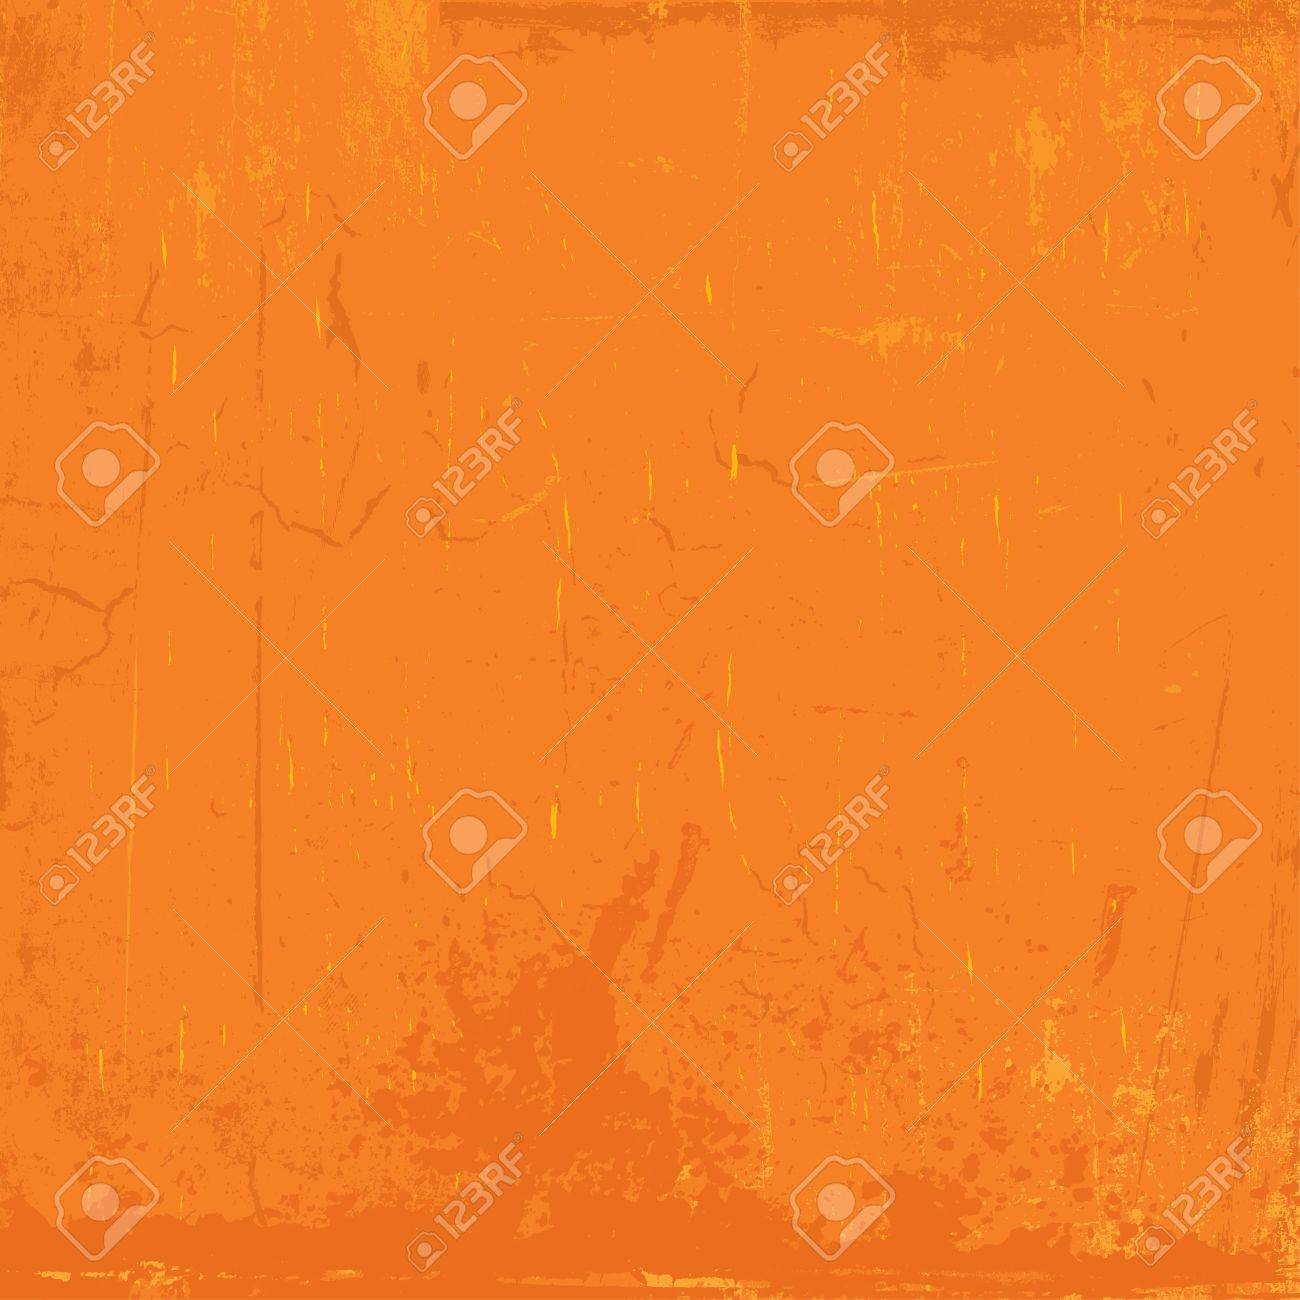 Grunge background with scratches and stains in shades of orange Stock Vector - 9736653